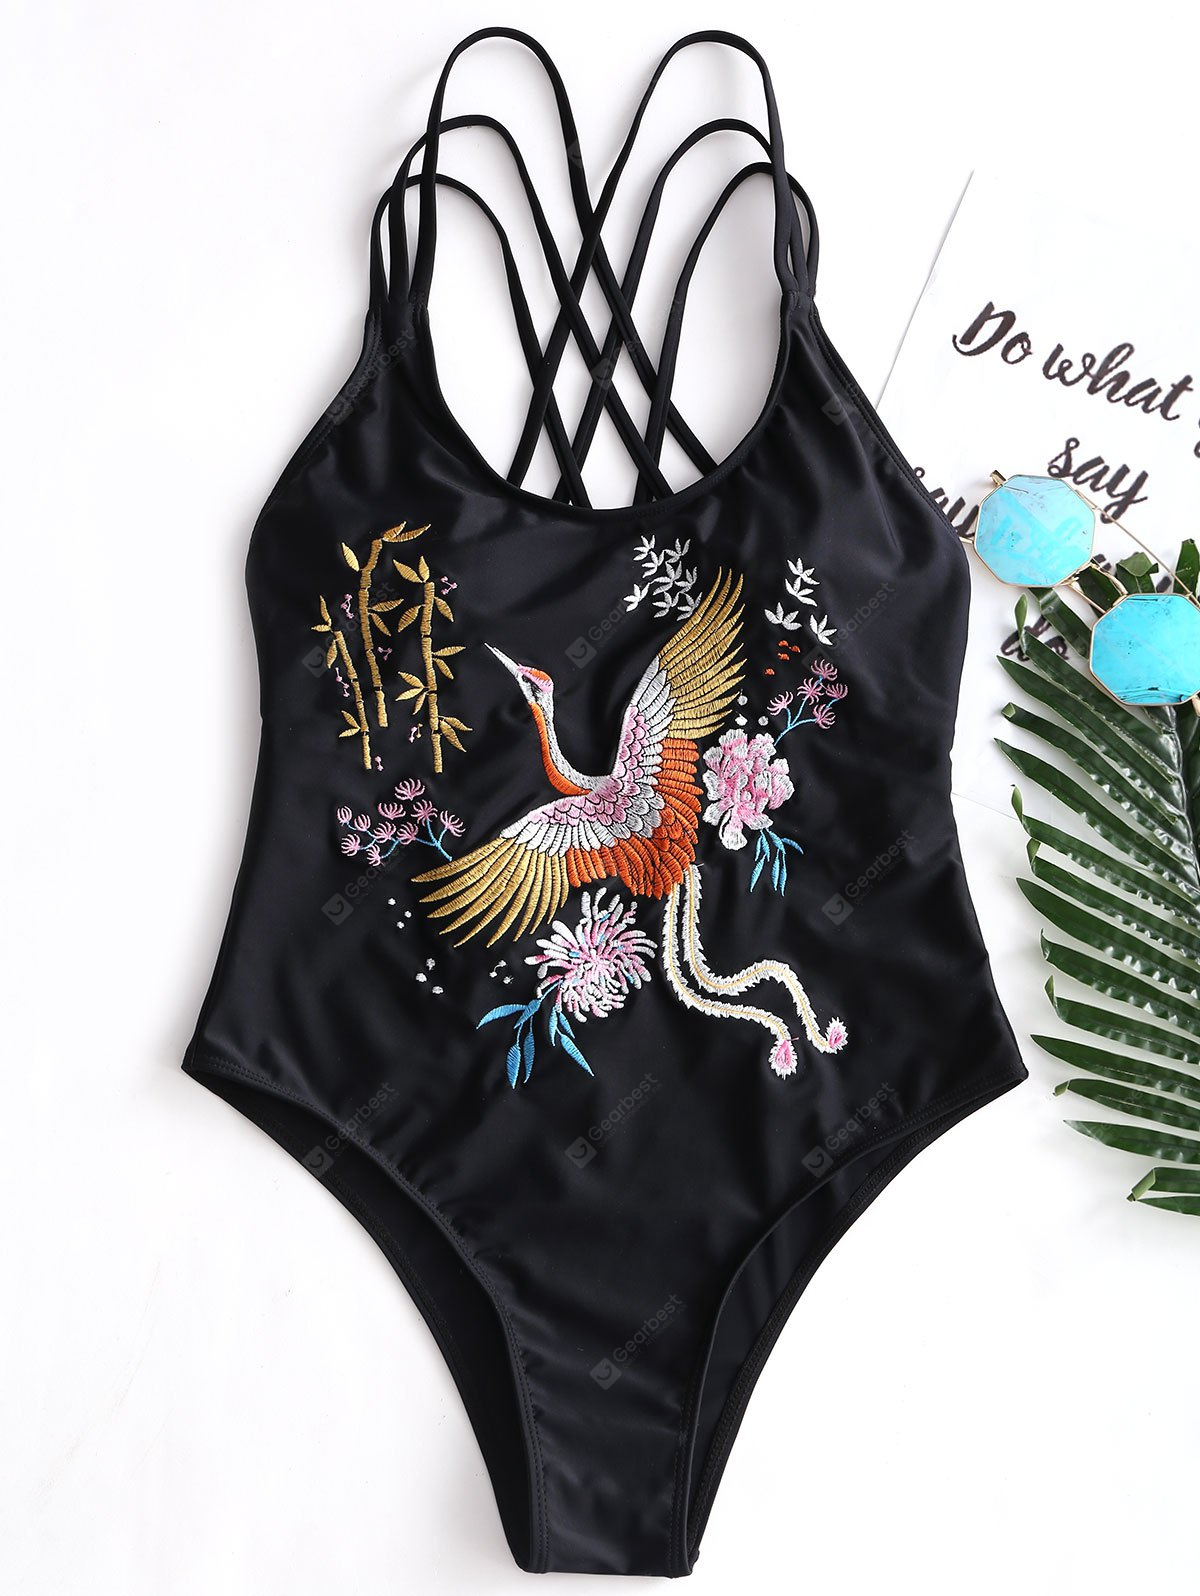 Embroidered Crisscross Strappy Swimsuit